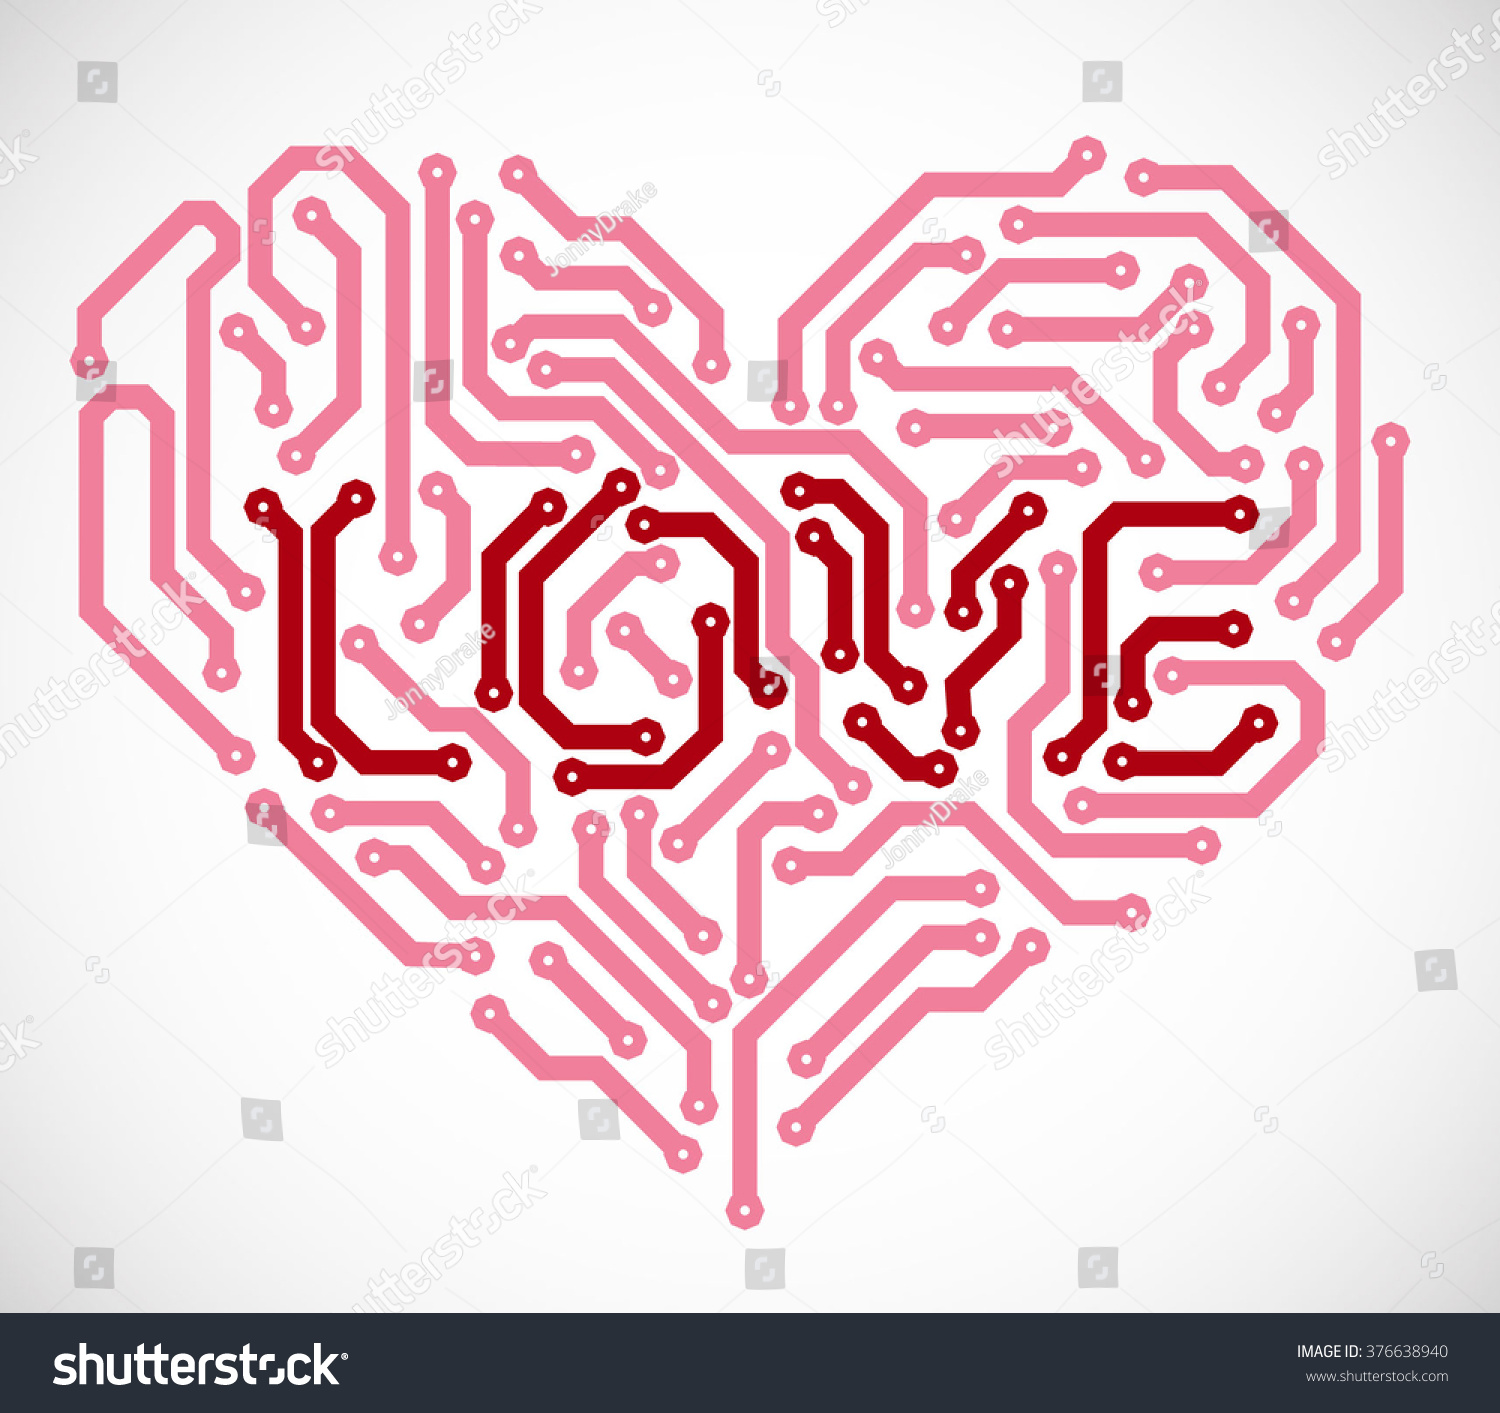 Heart Text Love Made Printed Circuit Stock Vector Royalty Free Red Electrical Board Symbol With From